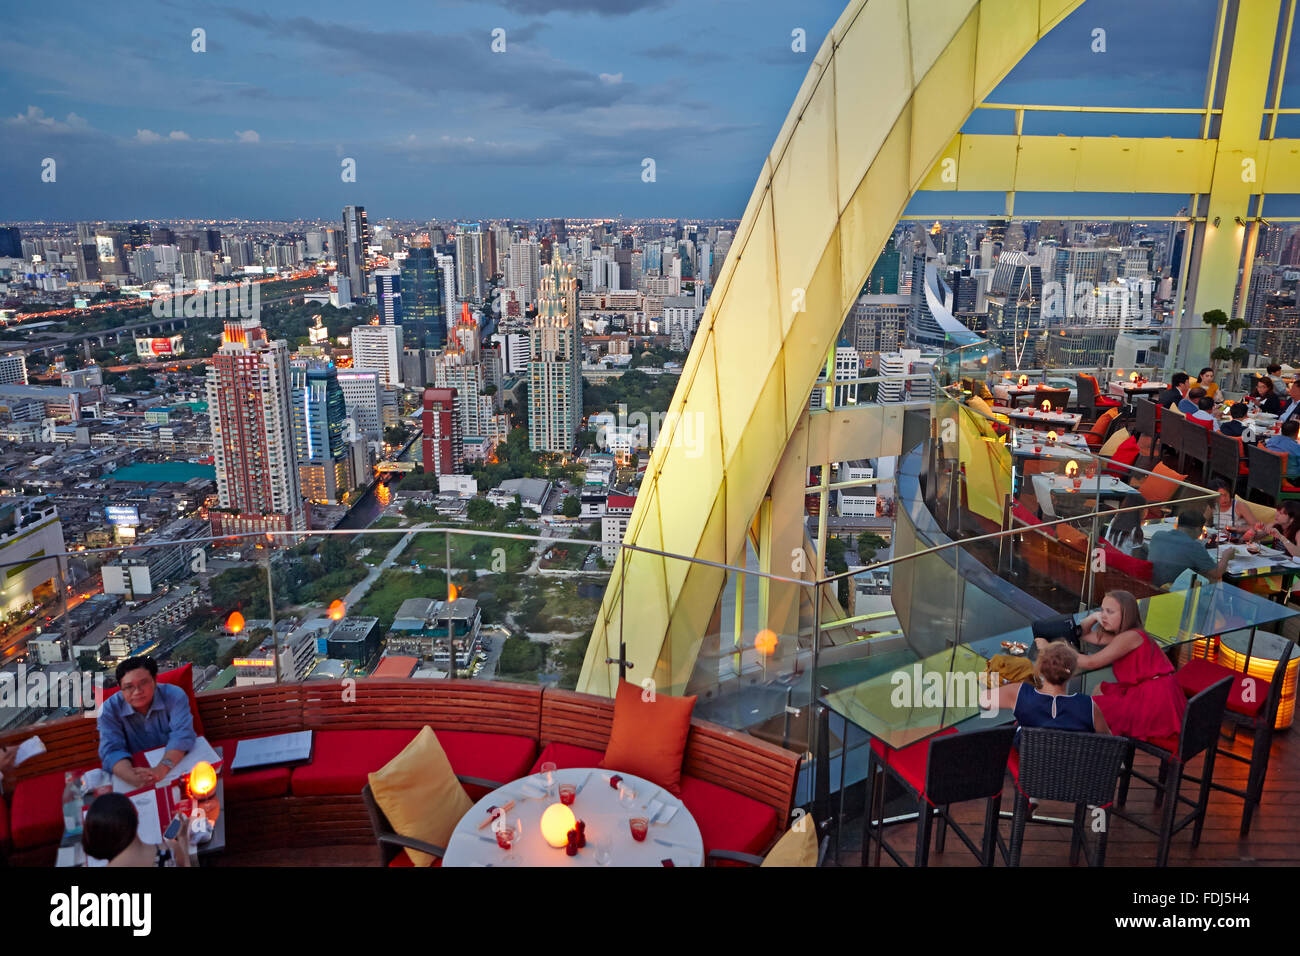 Elevated view from Red Sky Rooftop Bar. Centara Grand Hotel at CentralWorld Complex, Bangkok, Thailand. - Stock Image